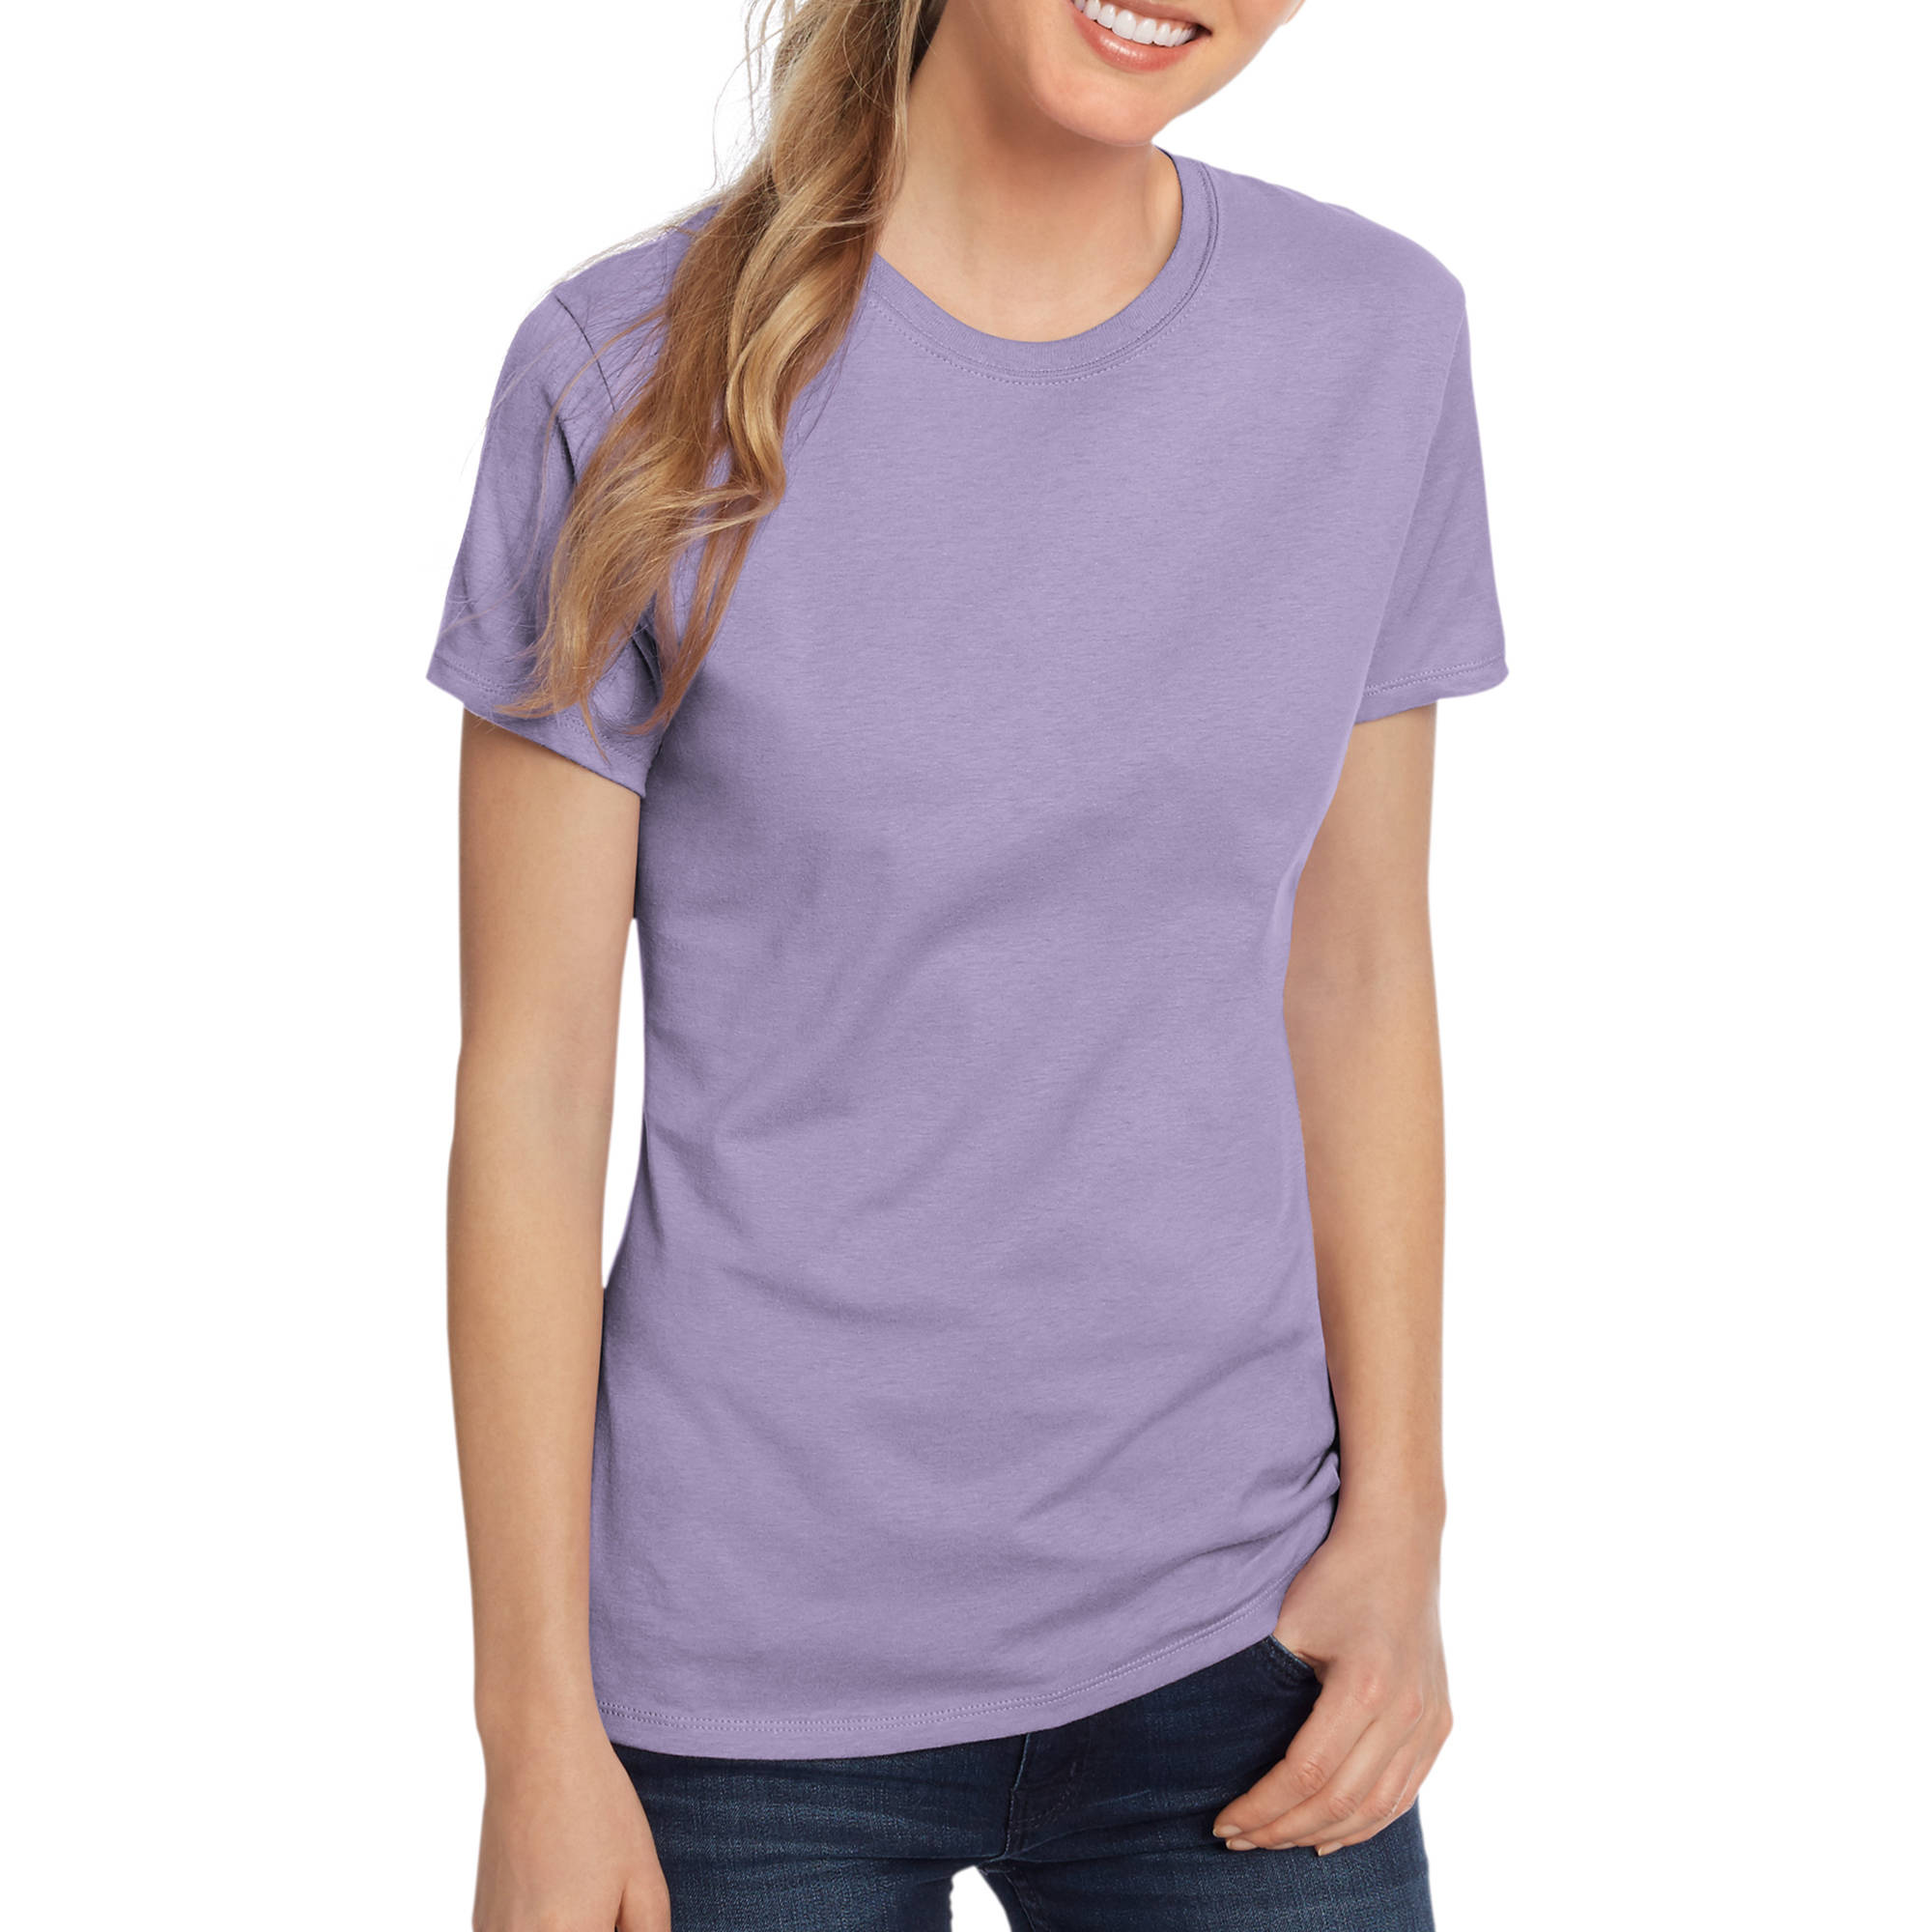 Hanes Women's Lightweight Short Sleeve Scoop neck T-Shirt